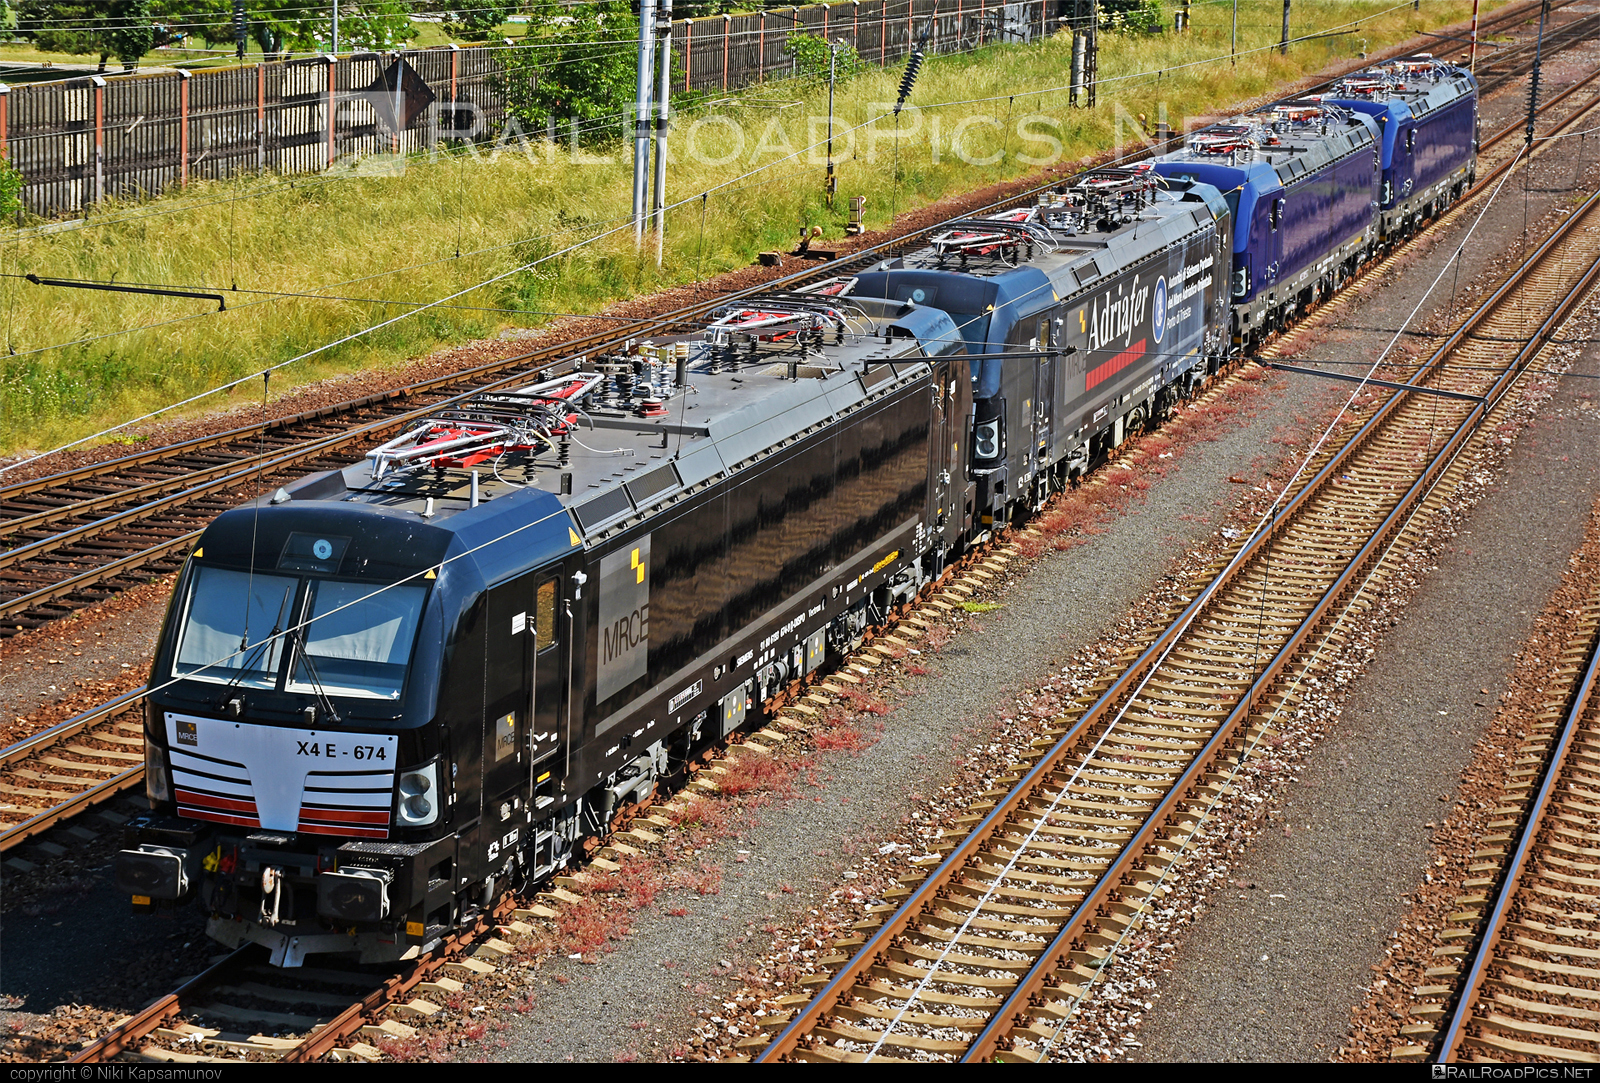 Siemens Vectron MS - 193 674-9 operated by ADRIAFER S.R.L. #adriafer #dispolok #mitsuirailcapitaleurope #mitsuirailcapitaleuropegmbh #mrce #siemens #siemensvectron #siemensvectronms #vectron #vectronms